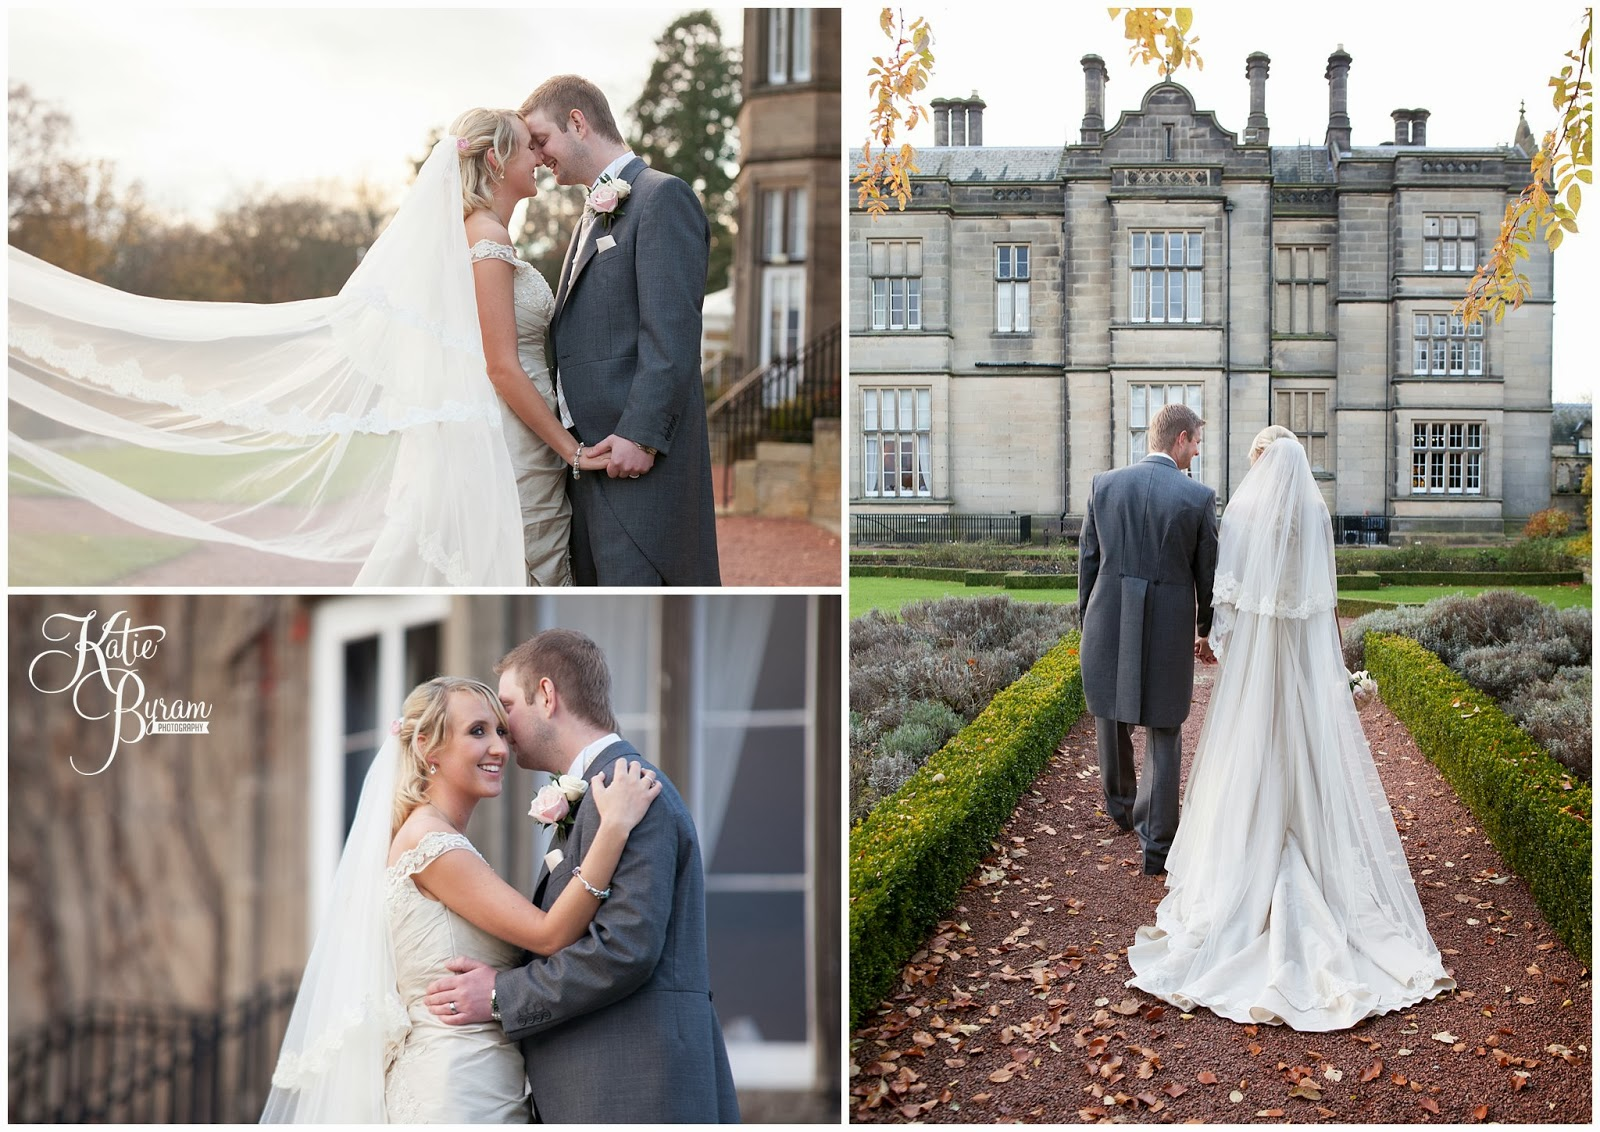 matfen hall wedding, matfen wedding, northumberland wedding, katie byram photography, vintage wedding, quirky wedding photography, north east wedding, north east wedding venue, great hall matfen, event diva, by wendy, just perfect,